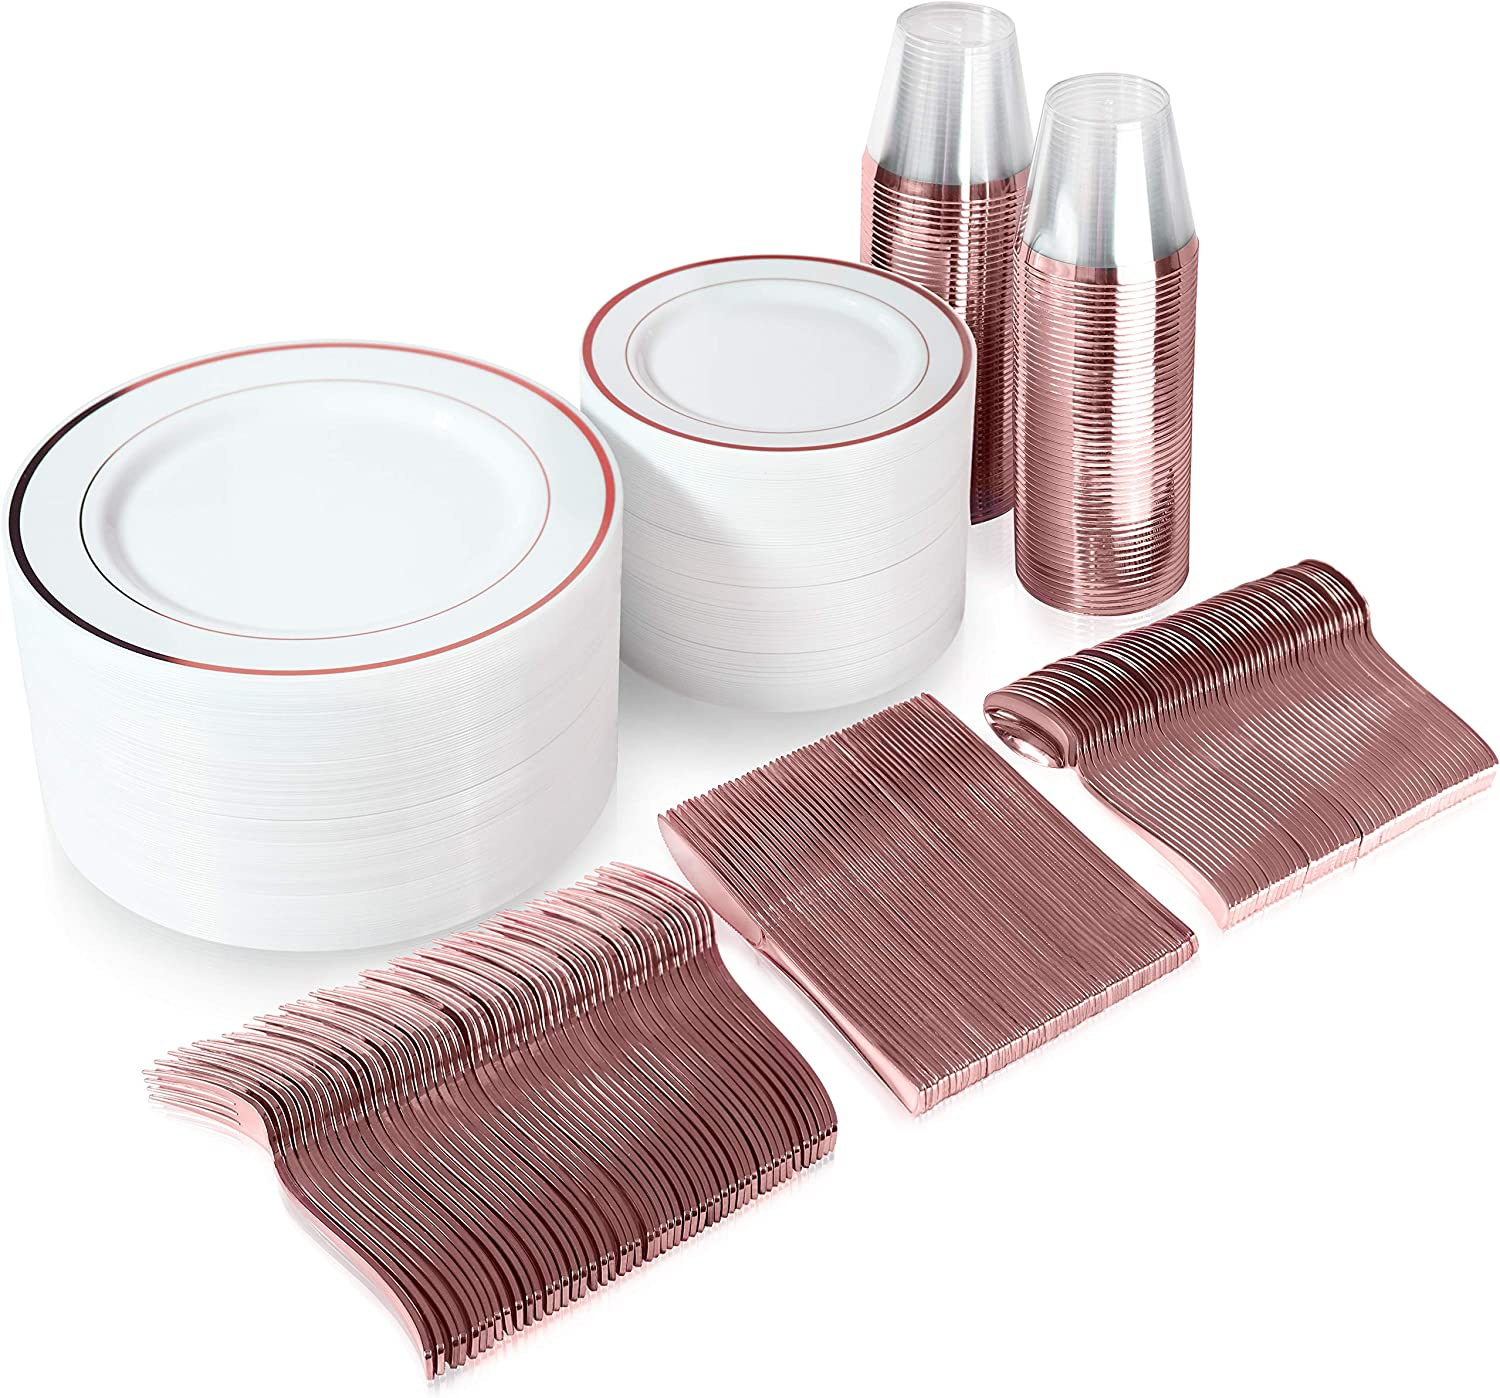 600 Piece Rose Gold Dinnerware Set - 200 White and Rose Gold Plastic Plates - Set of 300 Rose Gold Plastic Silverware - 100 Plastic Cups - Disposable Rose Gold Dinnerware Set for Party - 100 Guests